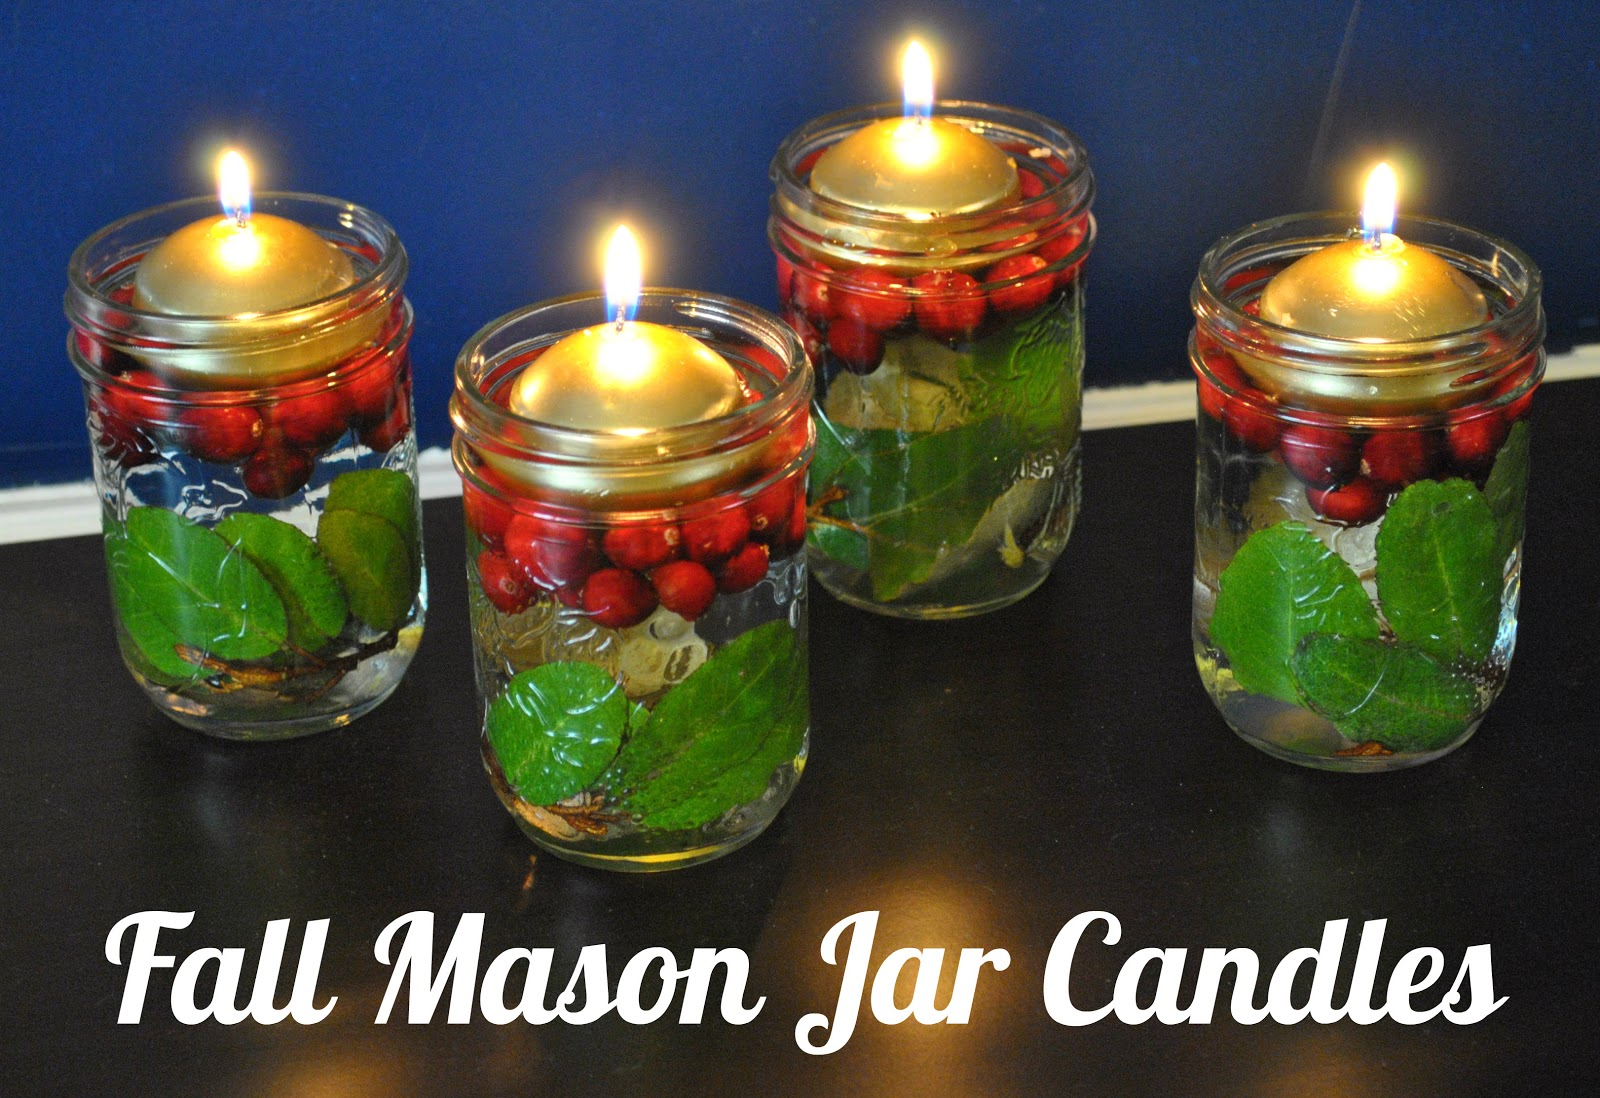 diy home decor fall mason jar candle - Candles Home Decor